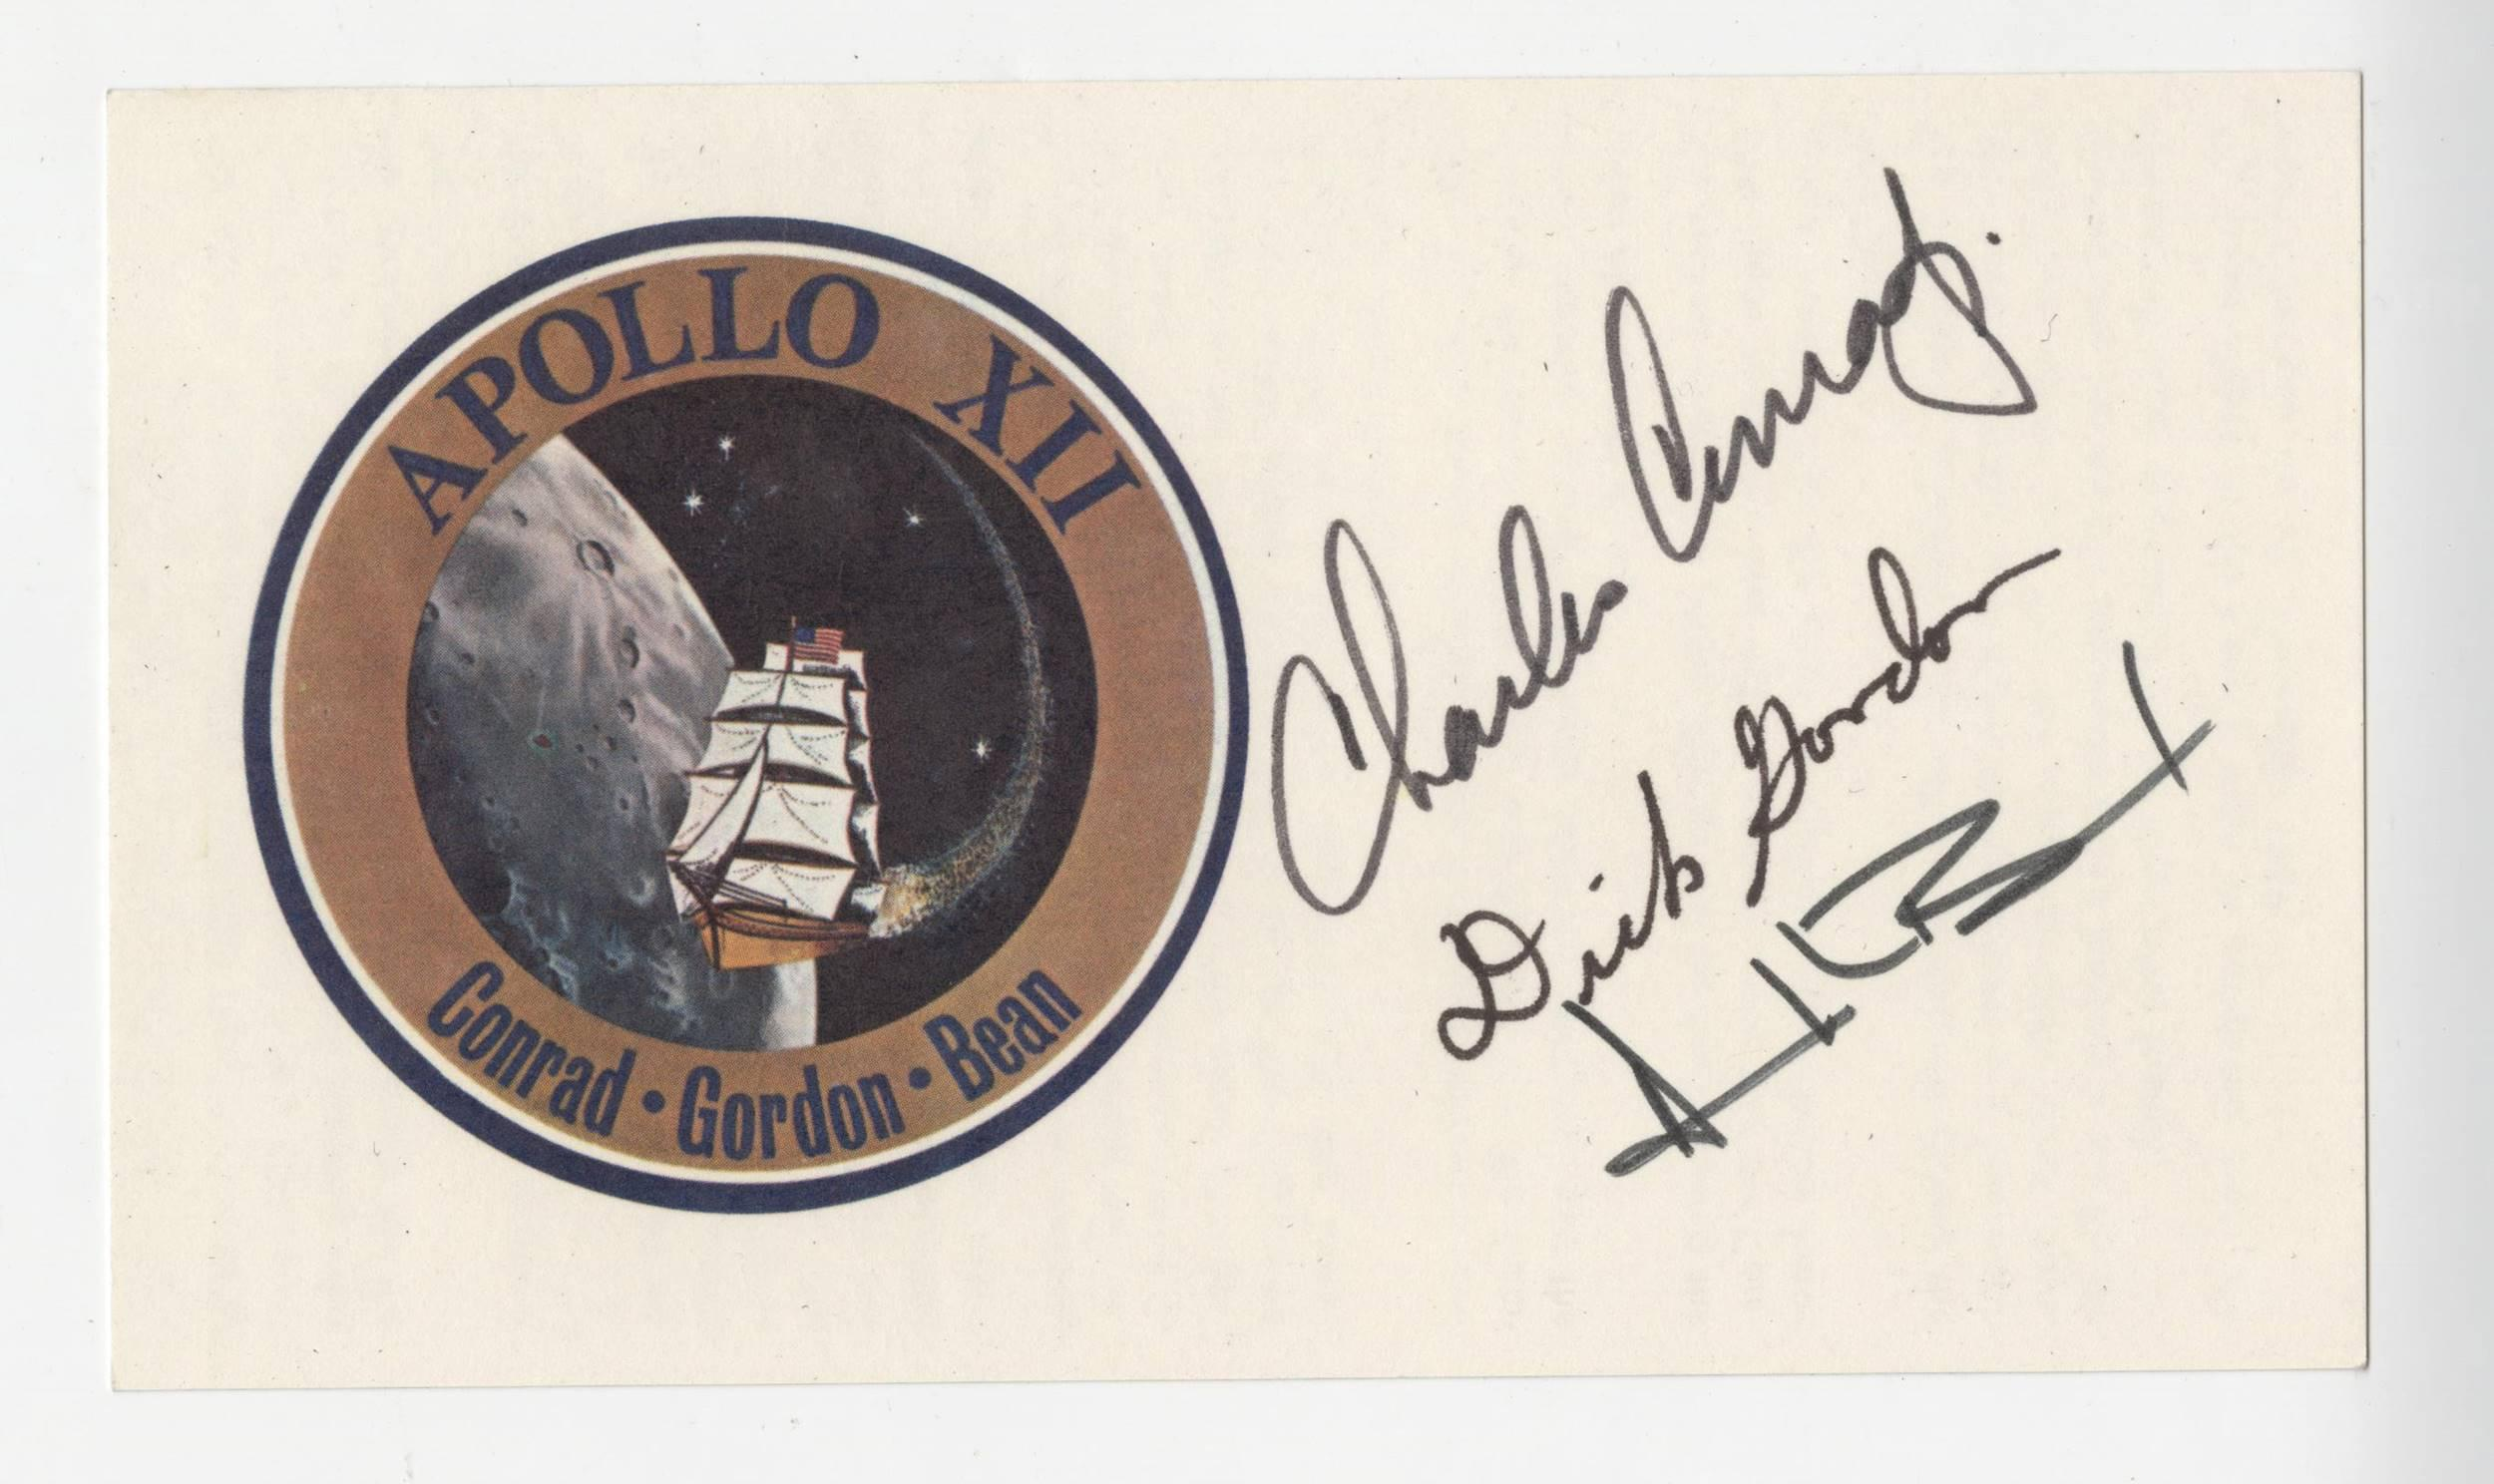 Apollo 12 Crew Signed Emblem Card, Conrad, Gordon and Bean